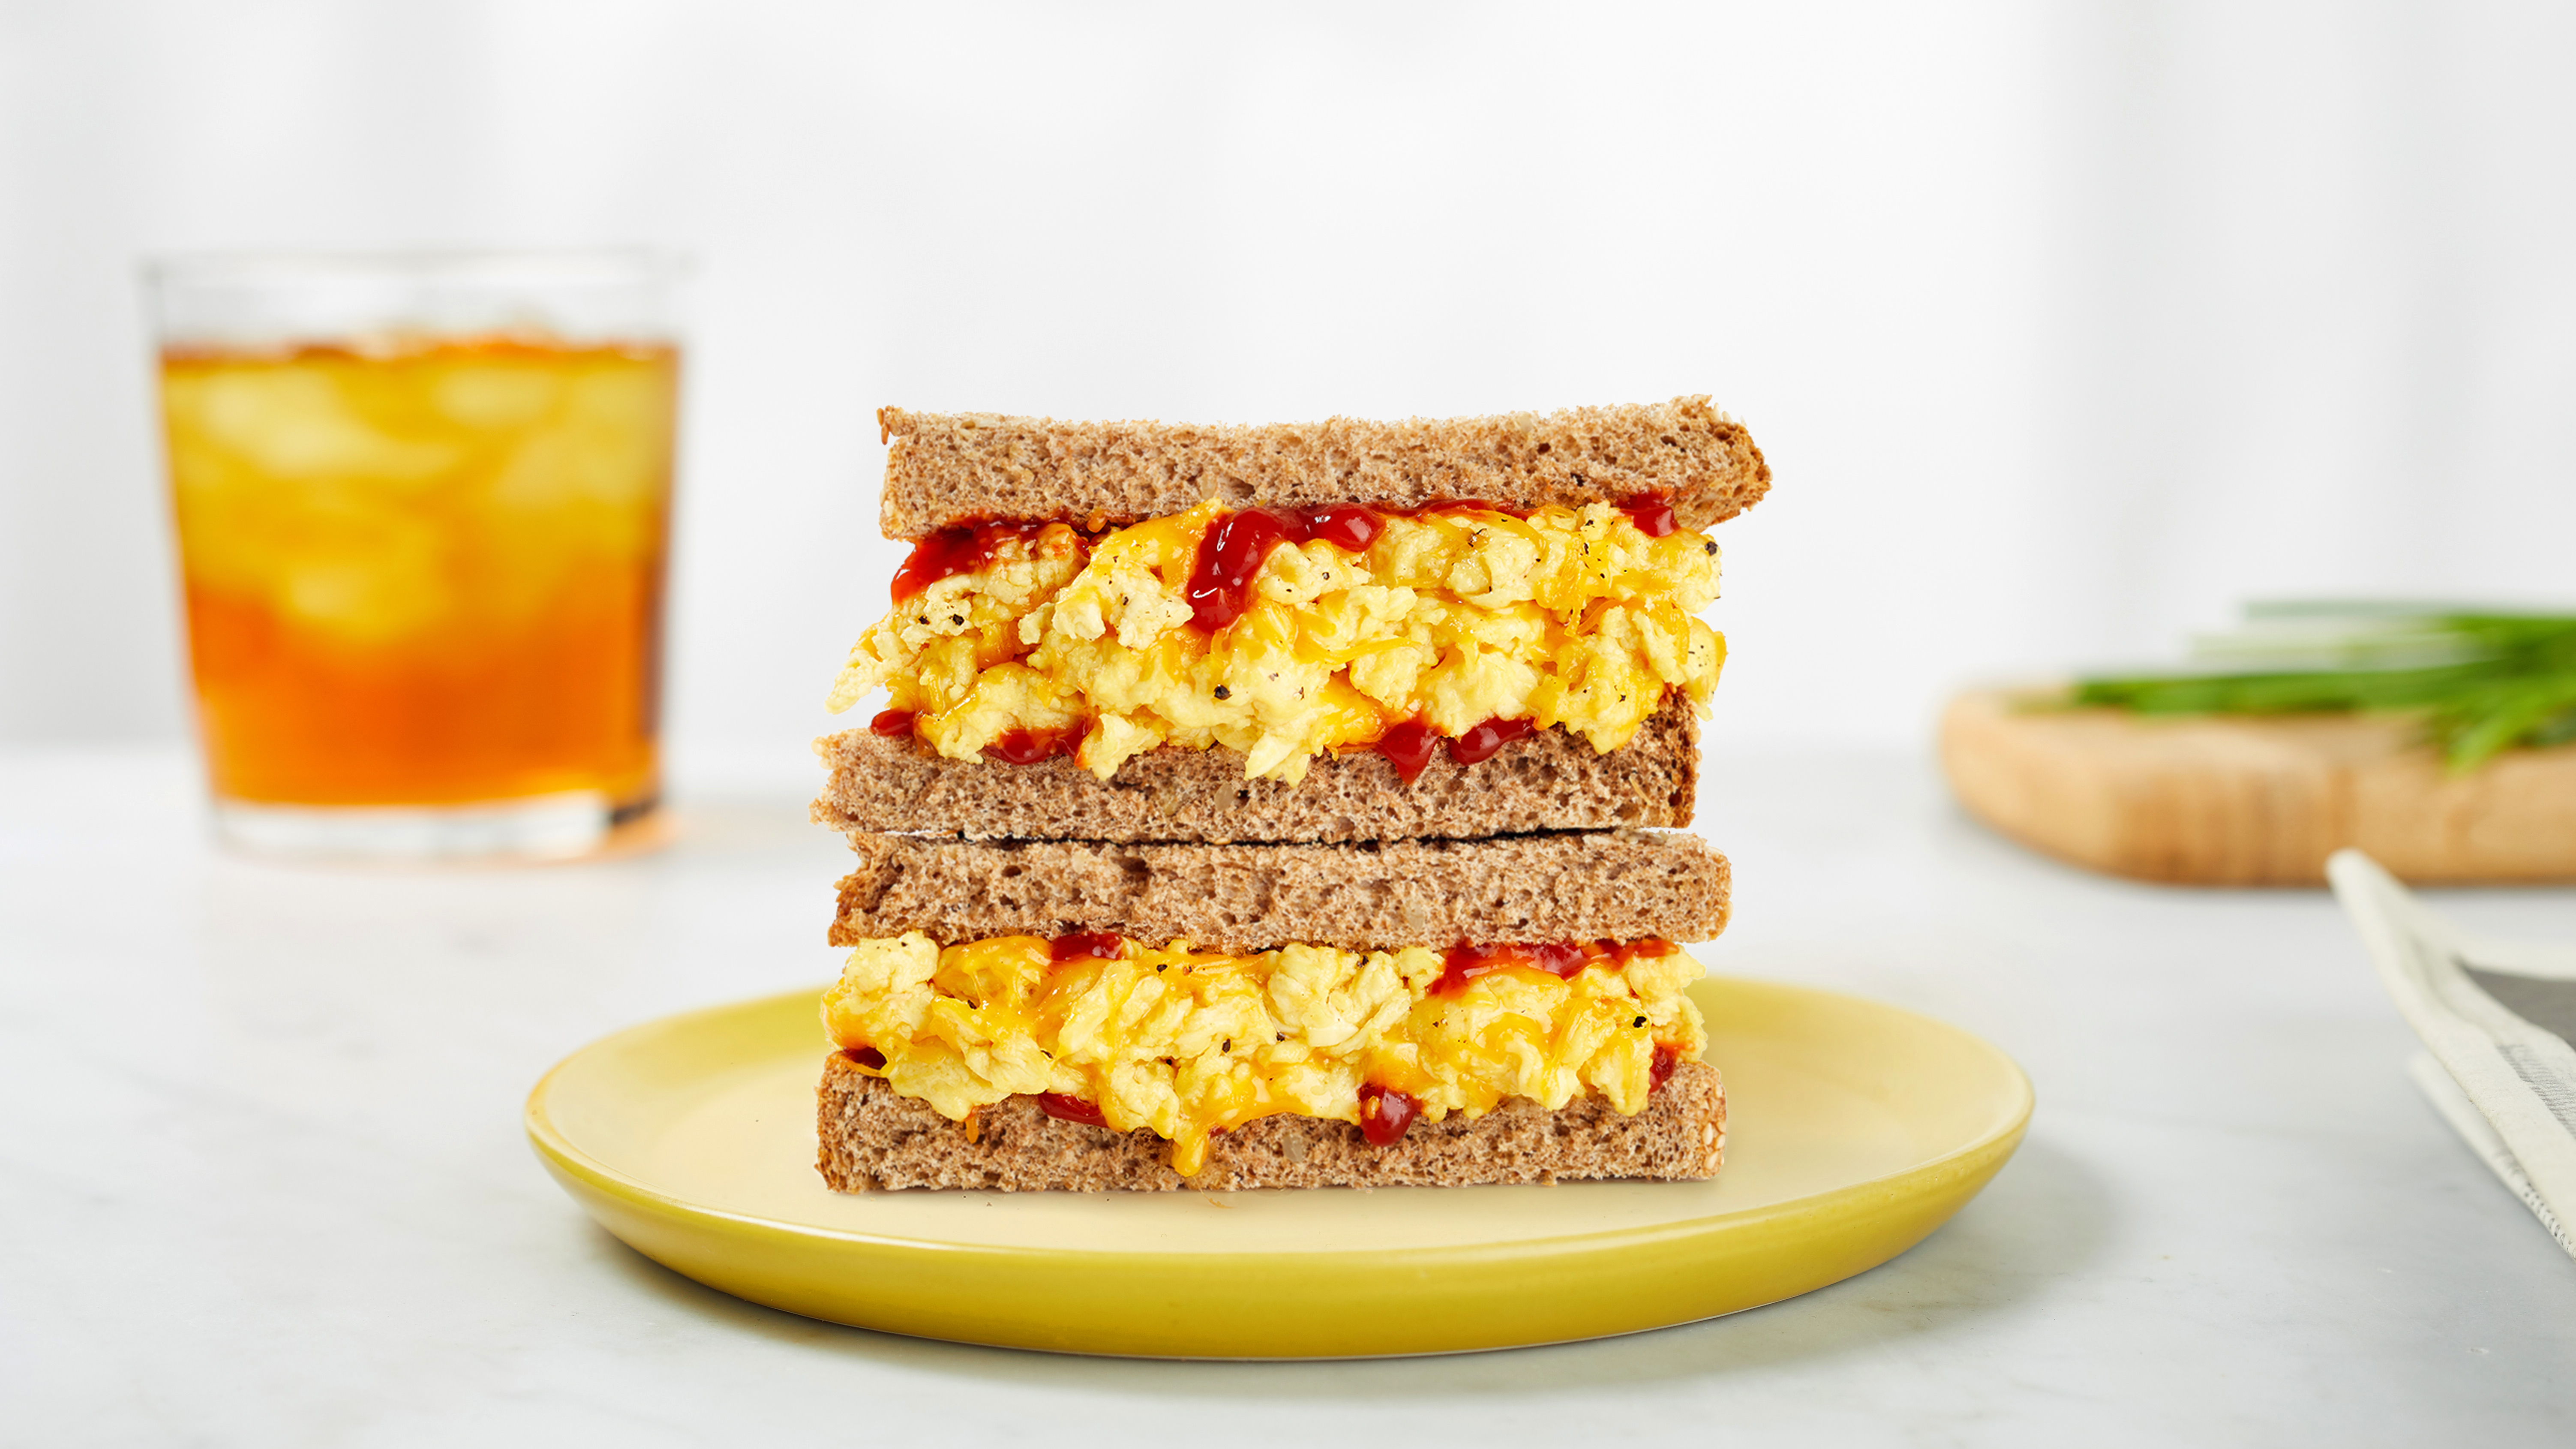 just-egg-sandwich-2.jpg